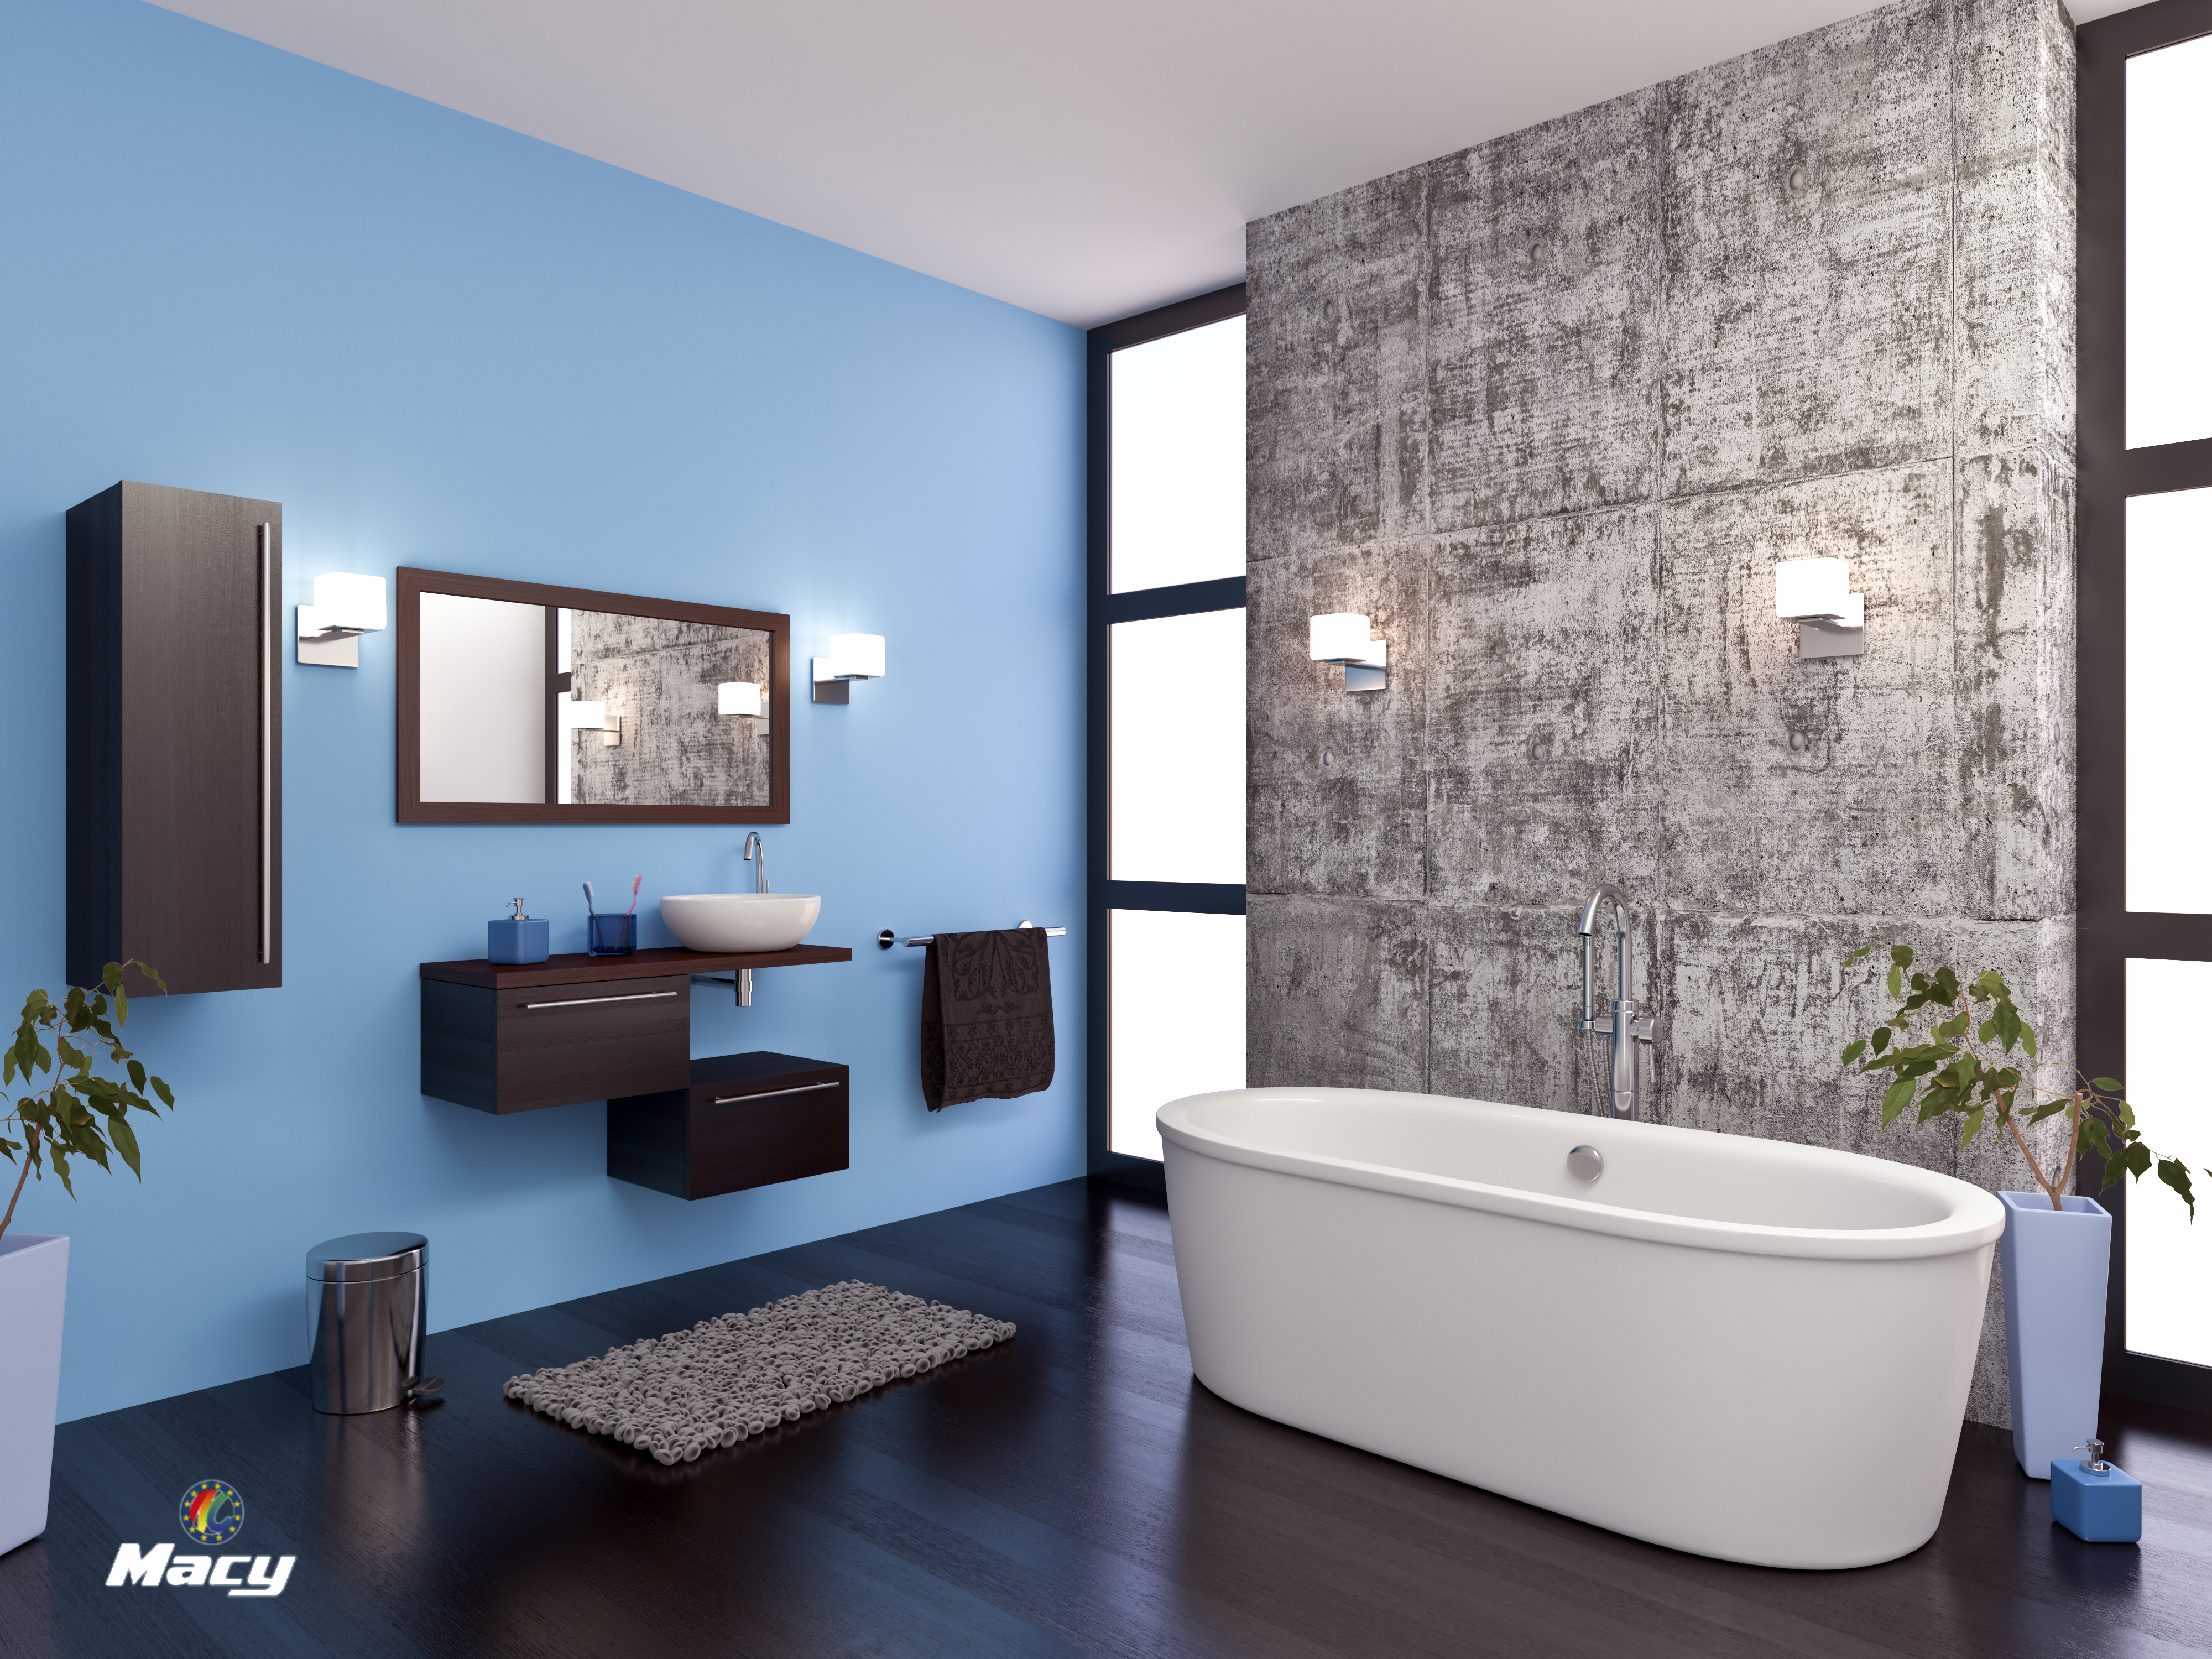 HOW TO PAINT YOUR BATHROOM EASILY